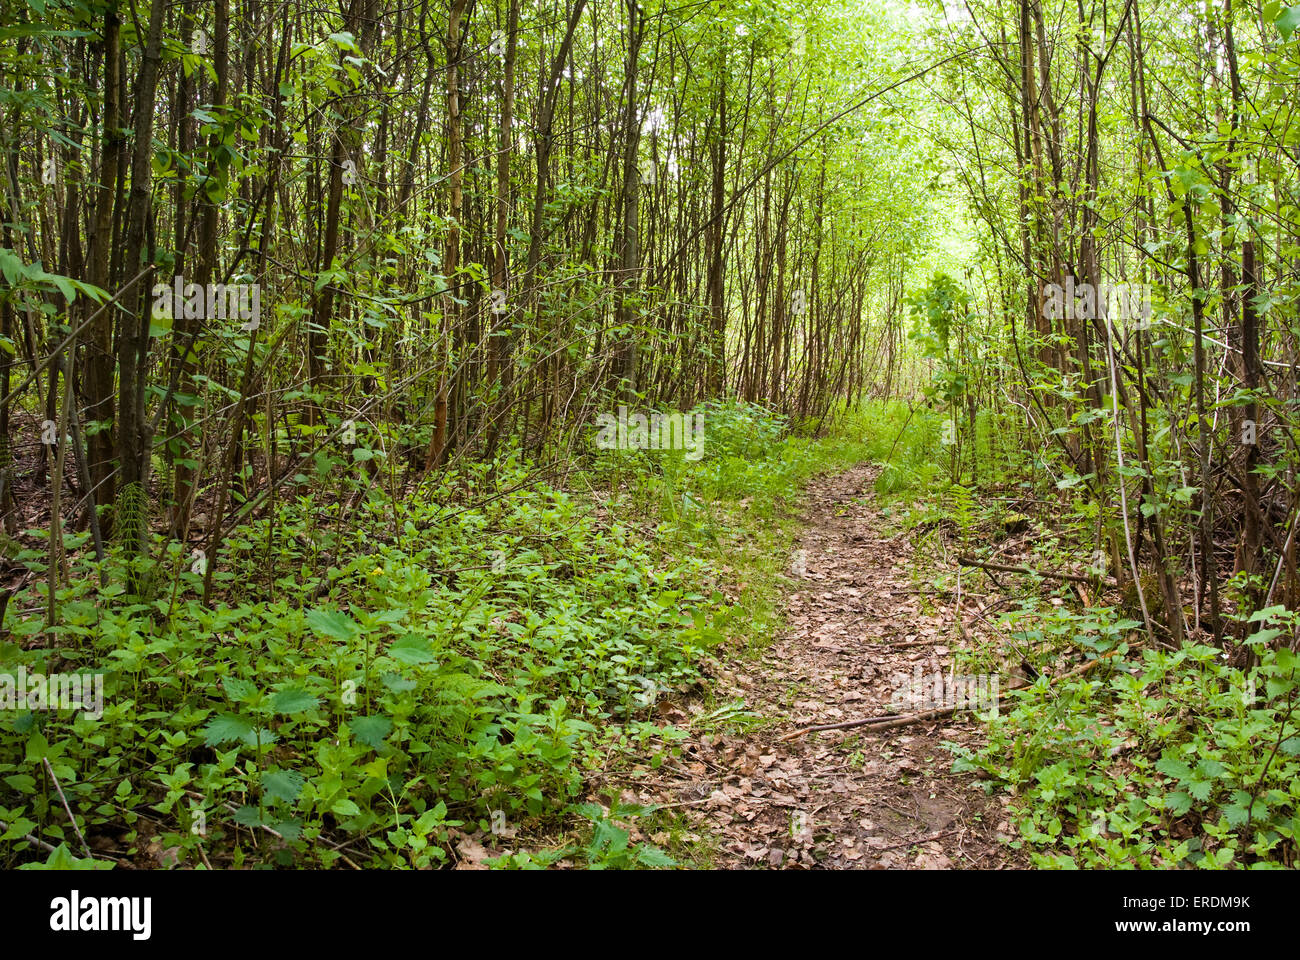 Footpath In A Dense Green Forest Natural Landscape Stock